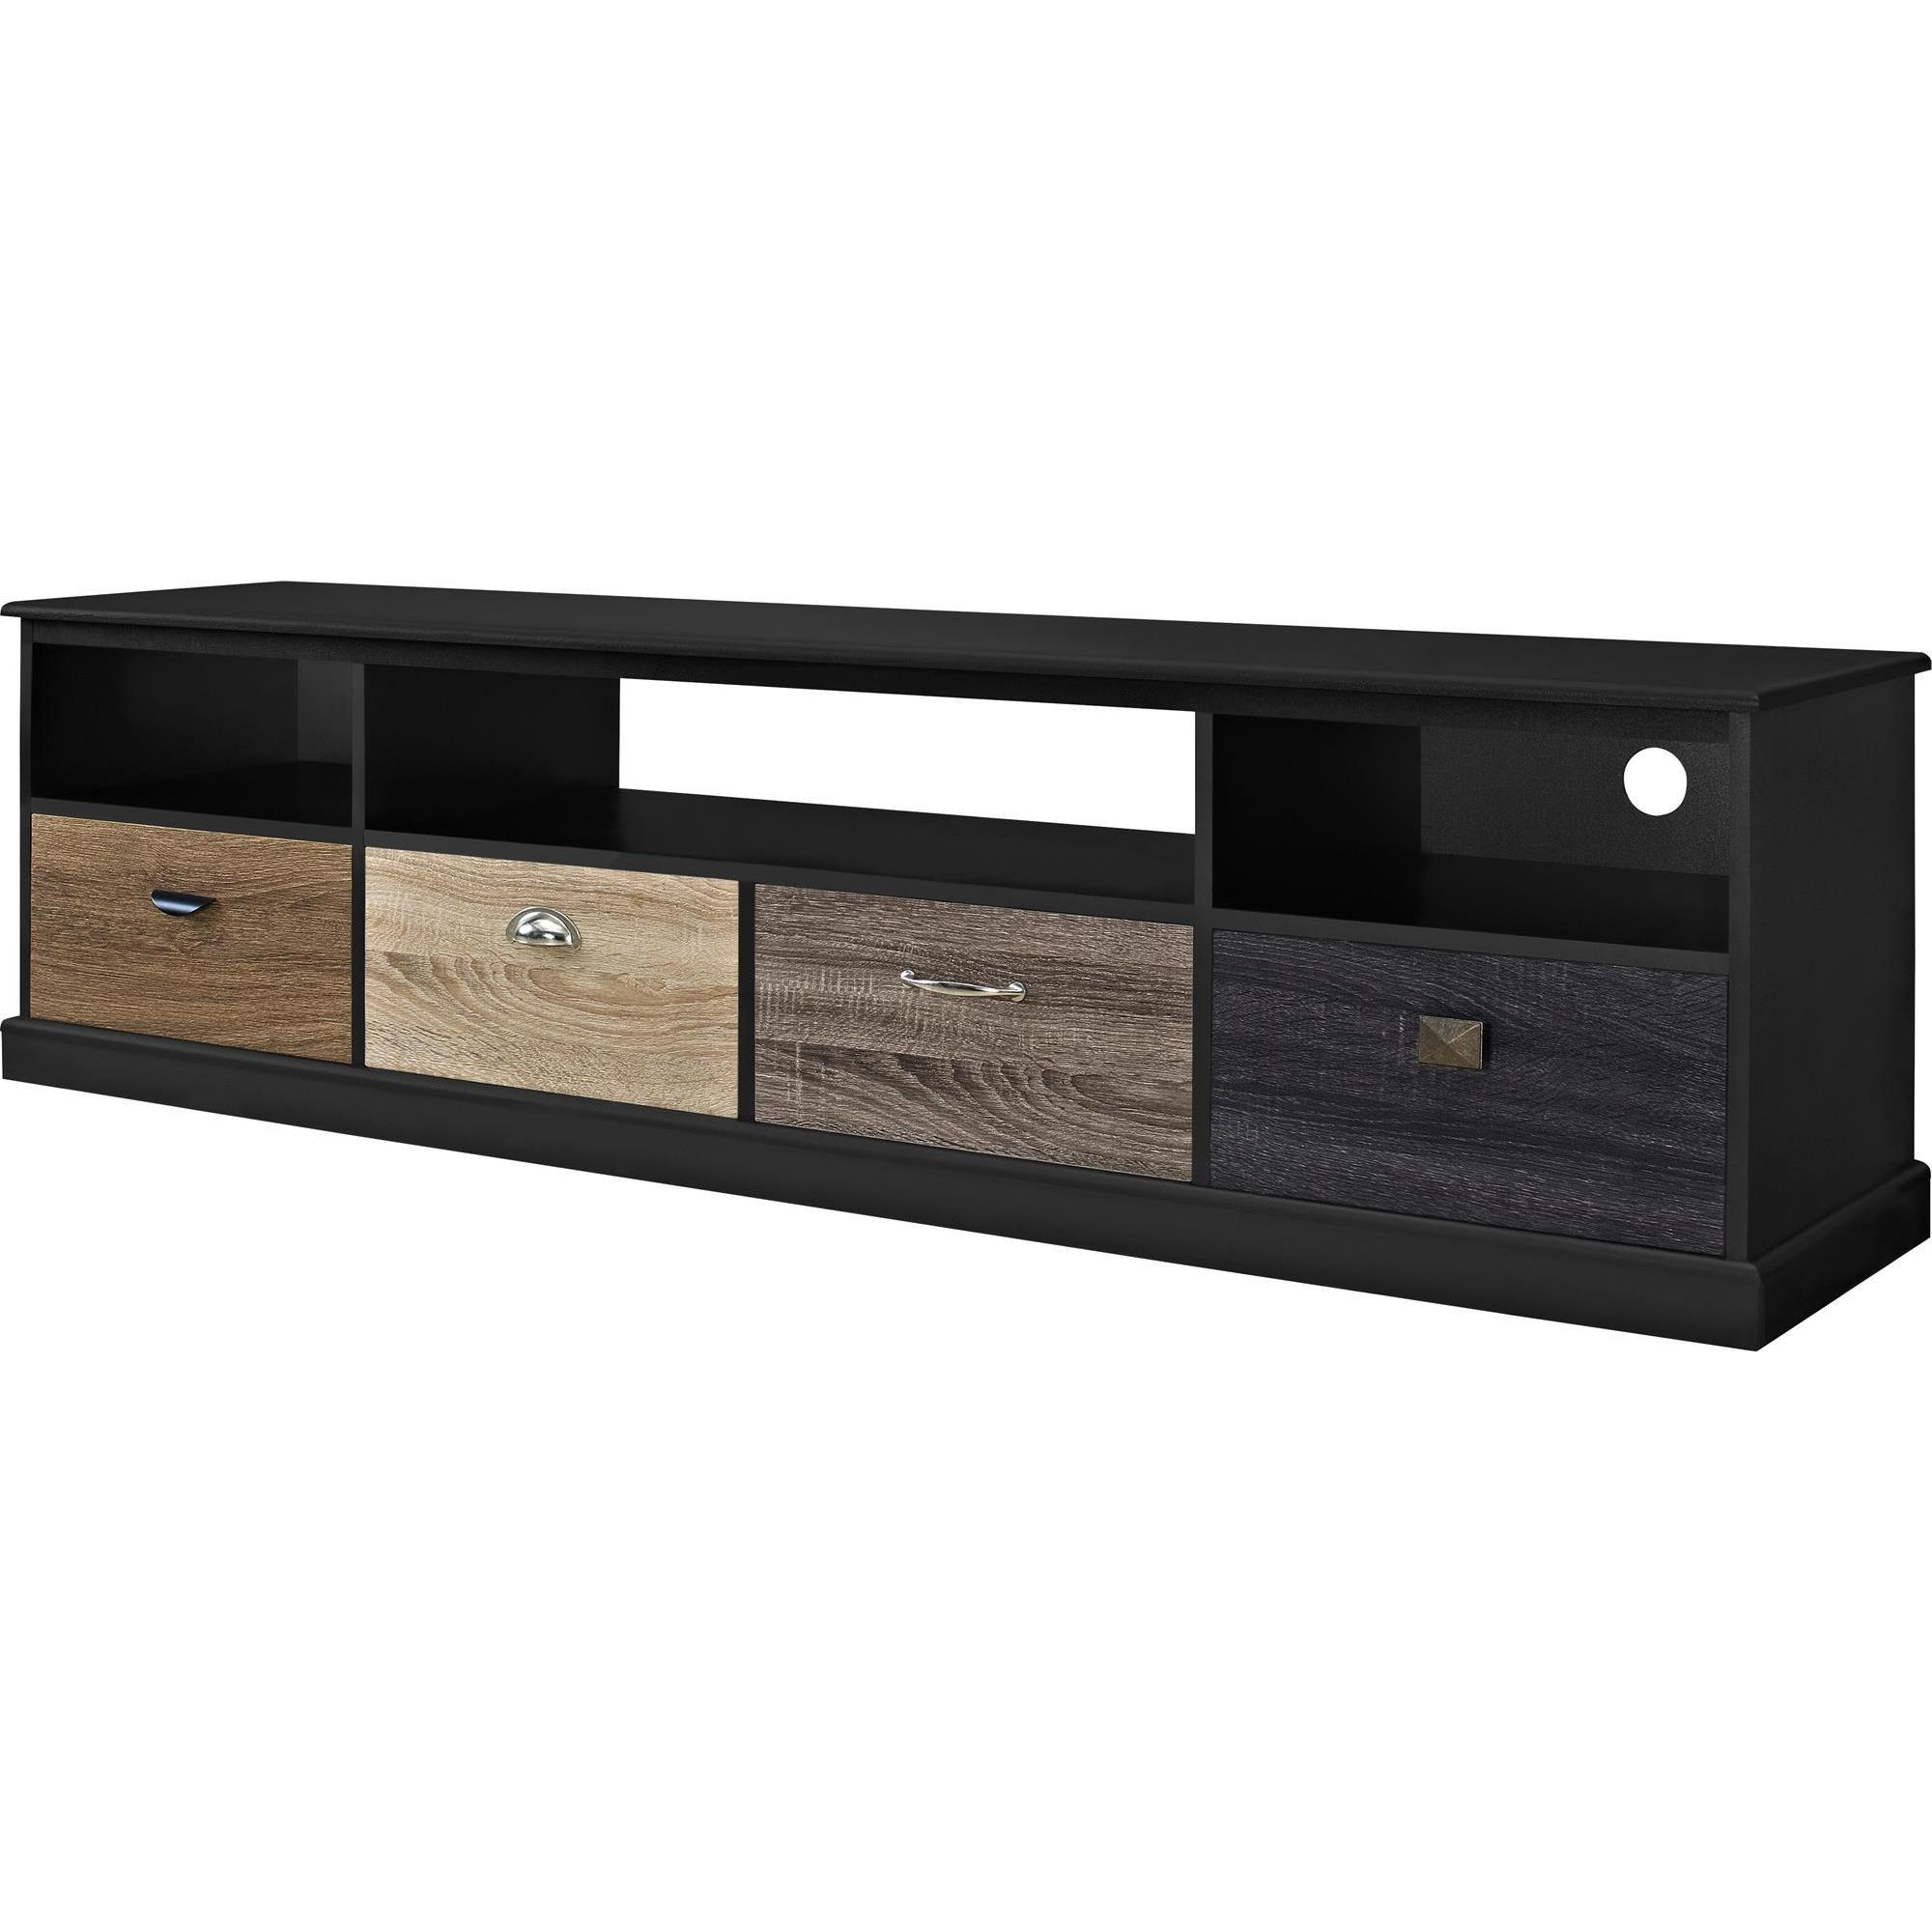 Shop Avenue Greene Mercer 65 Inch Black Tv Console With Multicolored Inside Kilian Grey 49 Inch Tv Stands (Gallery 2 of 20)